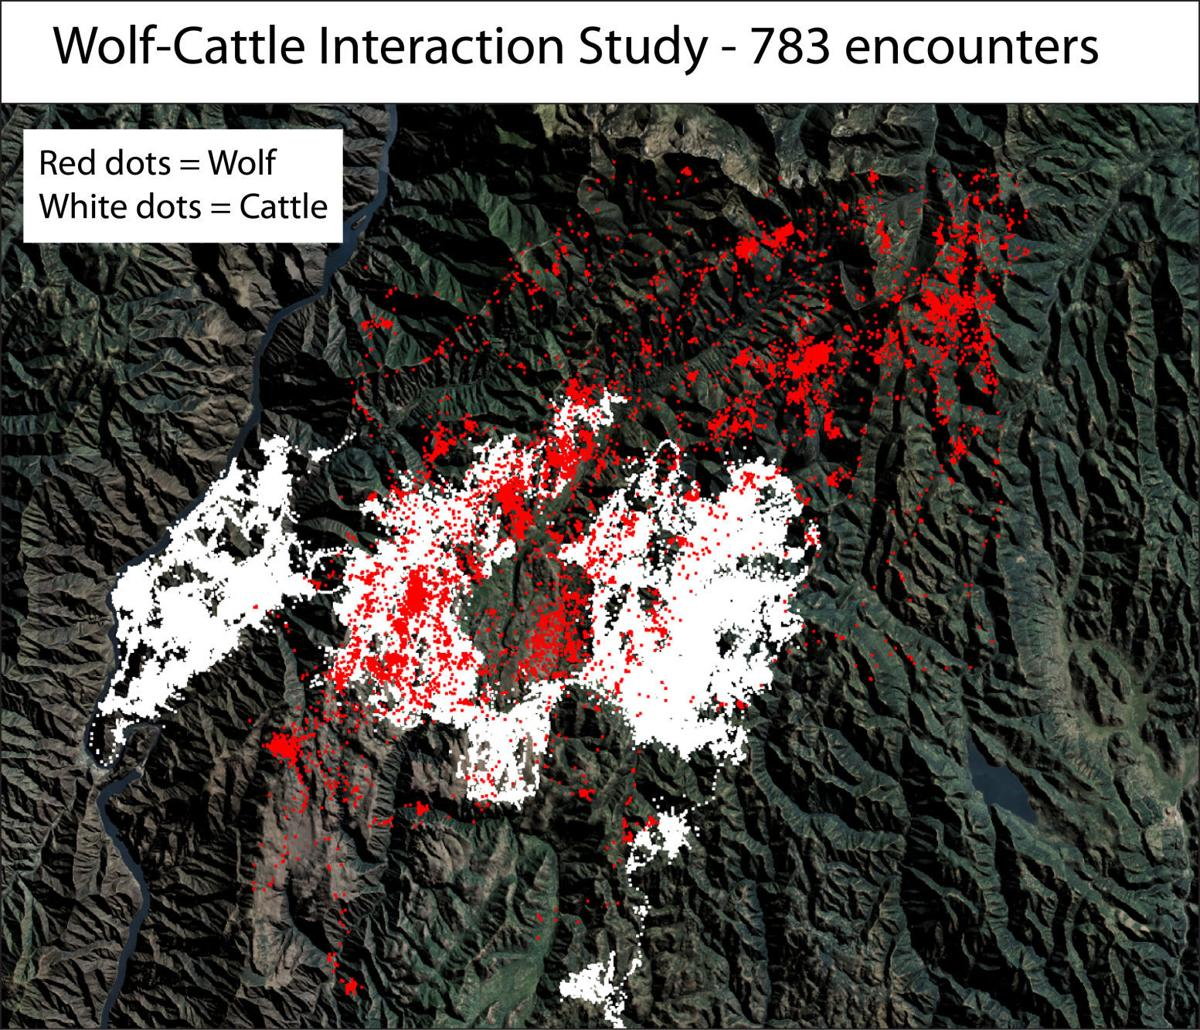 Wolf-cattle interaction study